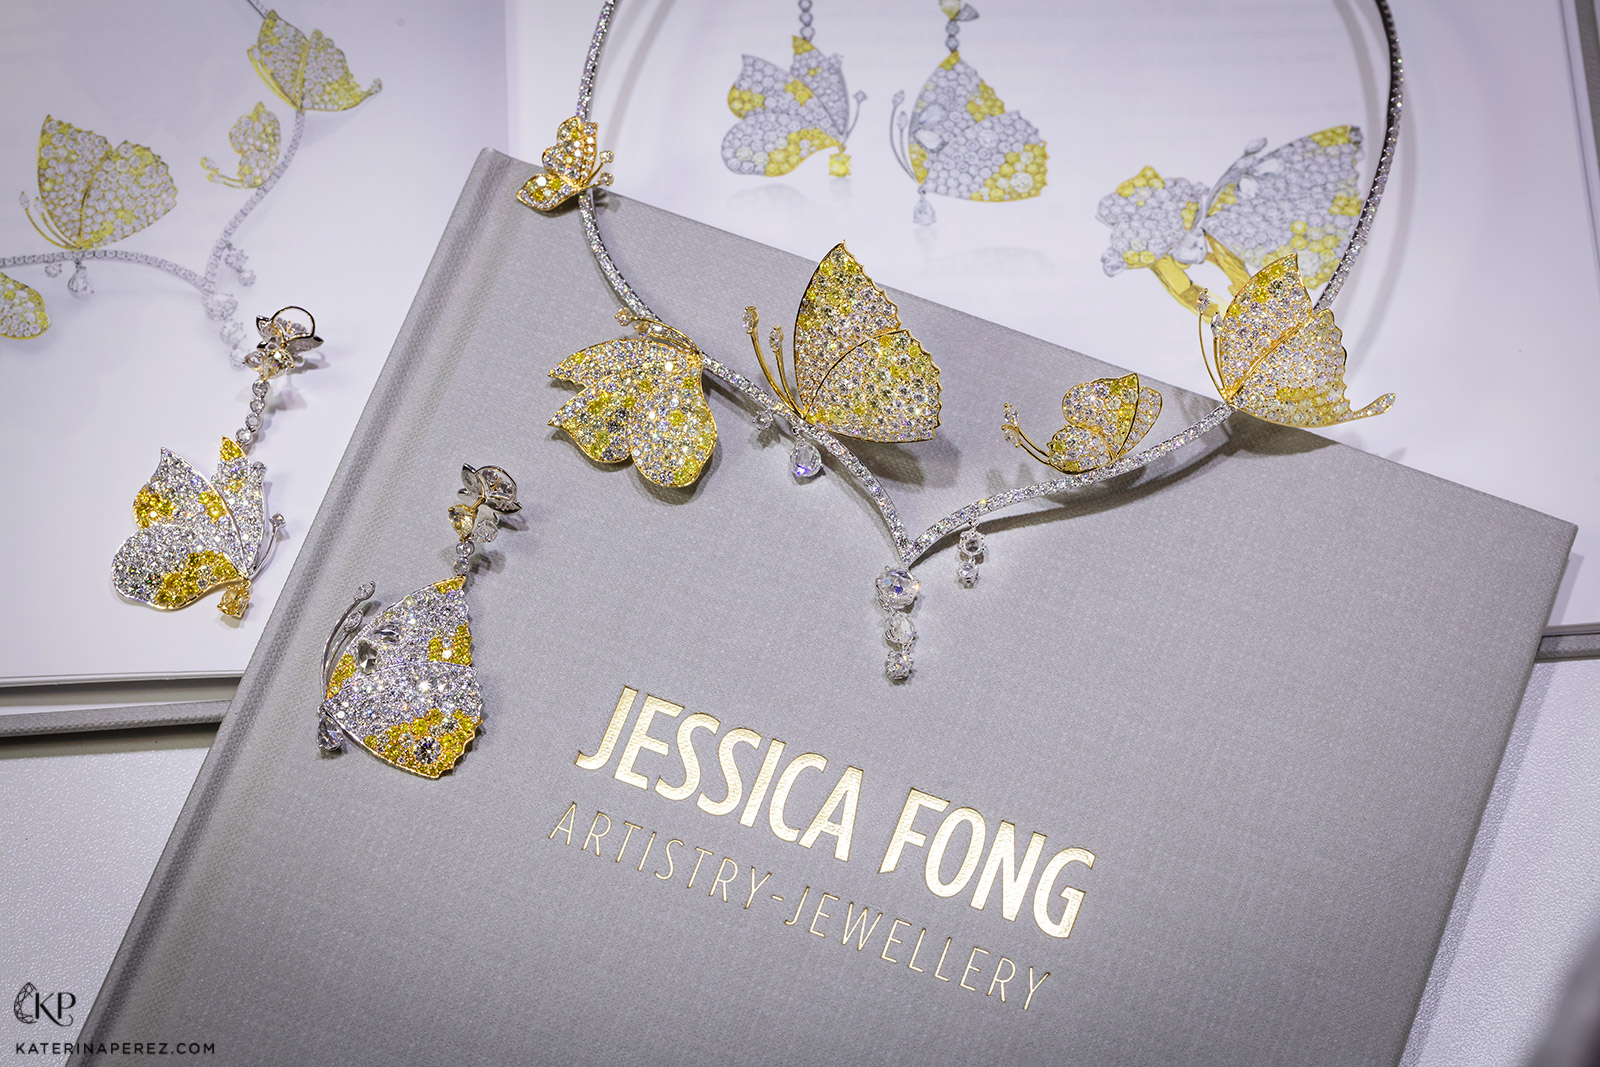 A selection of Jessica Fong 'La Floraison' jewellery with fancy yellow and colourless diamonds in 18k white and yellow gold